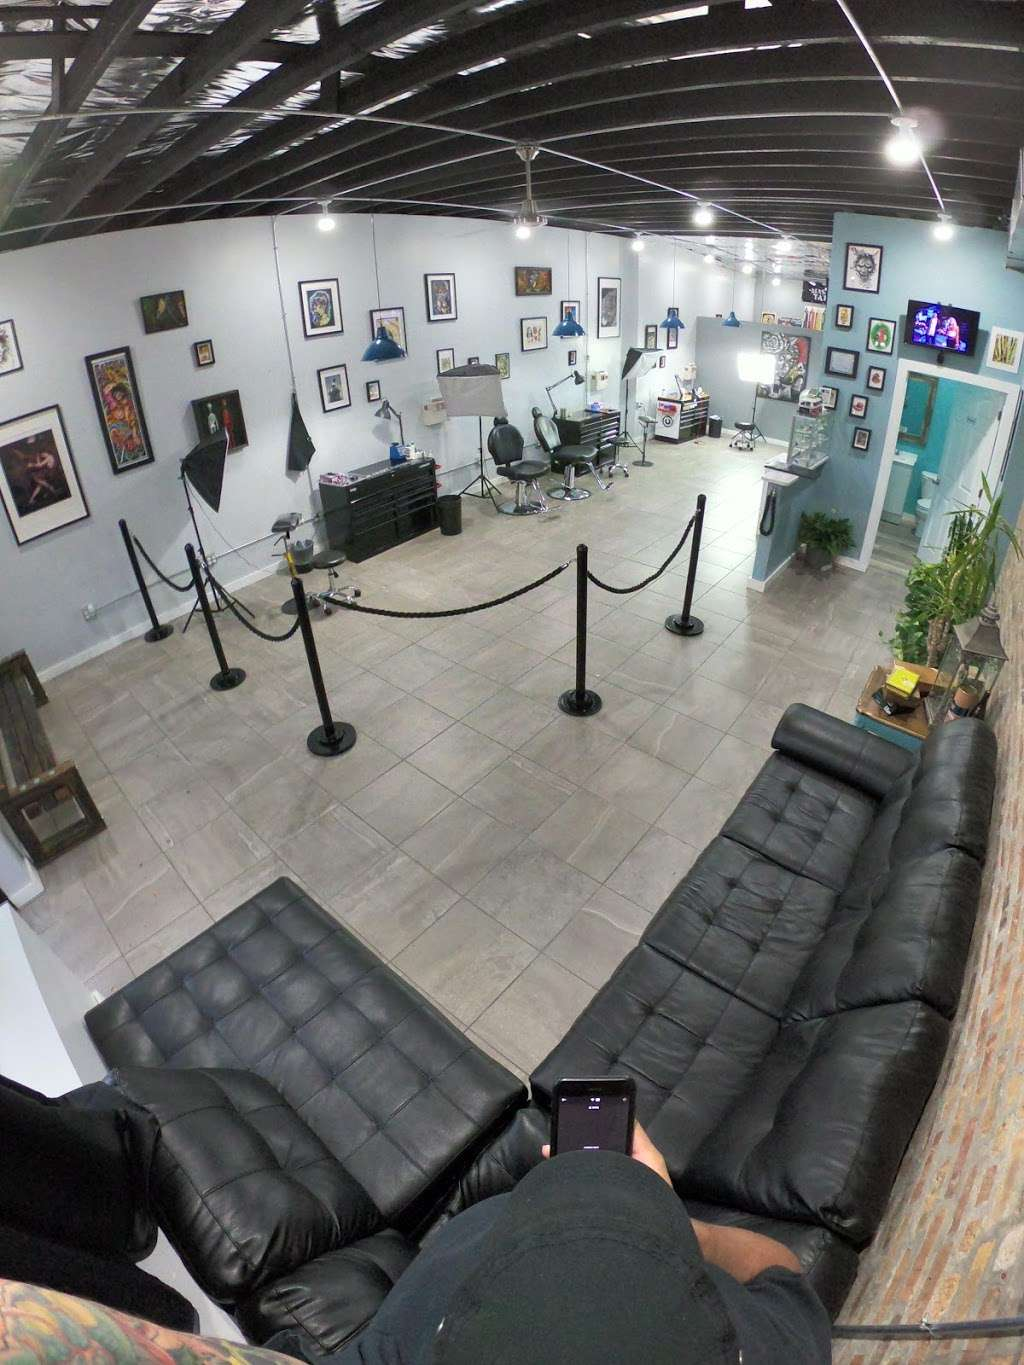 Master Craft Tattoo Co. - store  | Photo 7 of 10 | Address: 1637, 5844 S Archer Ave, Chicago, IL 60638, USA | Phone: (312) 806-4342